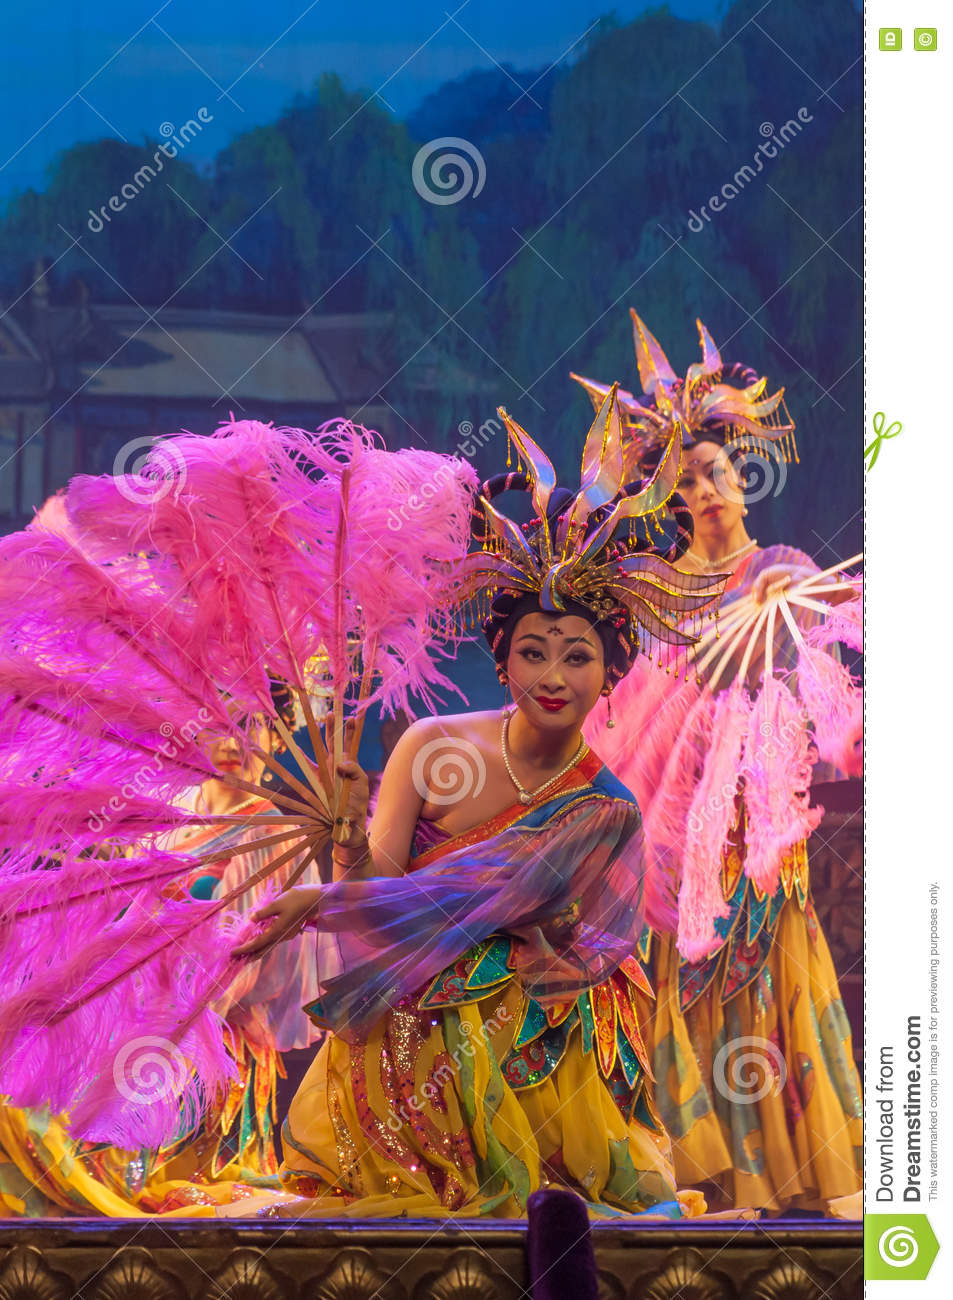 Chinese dancers on stage